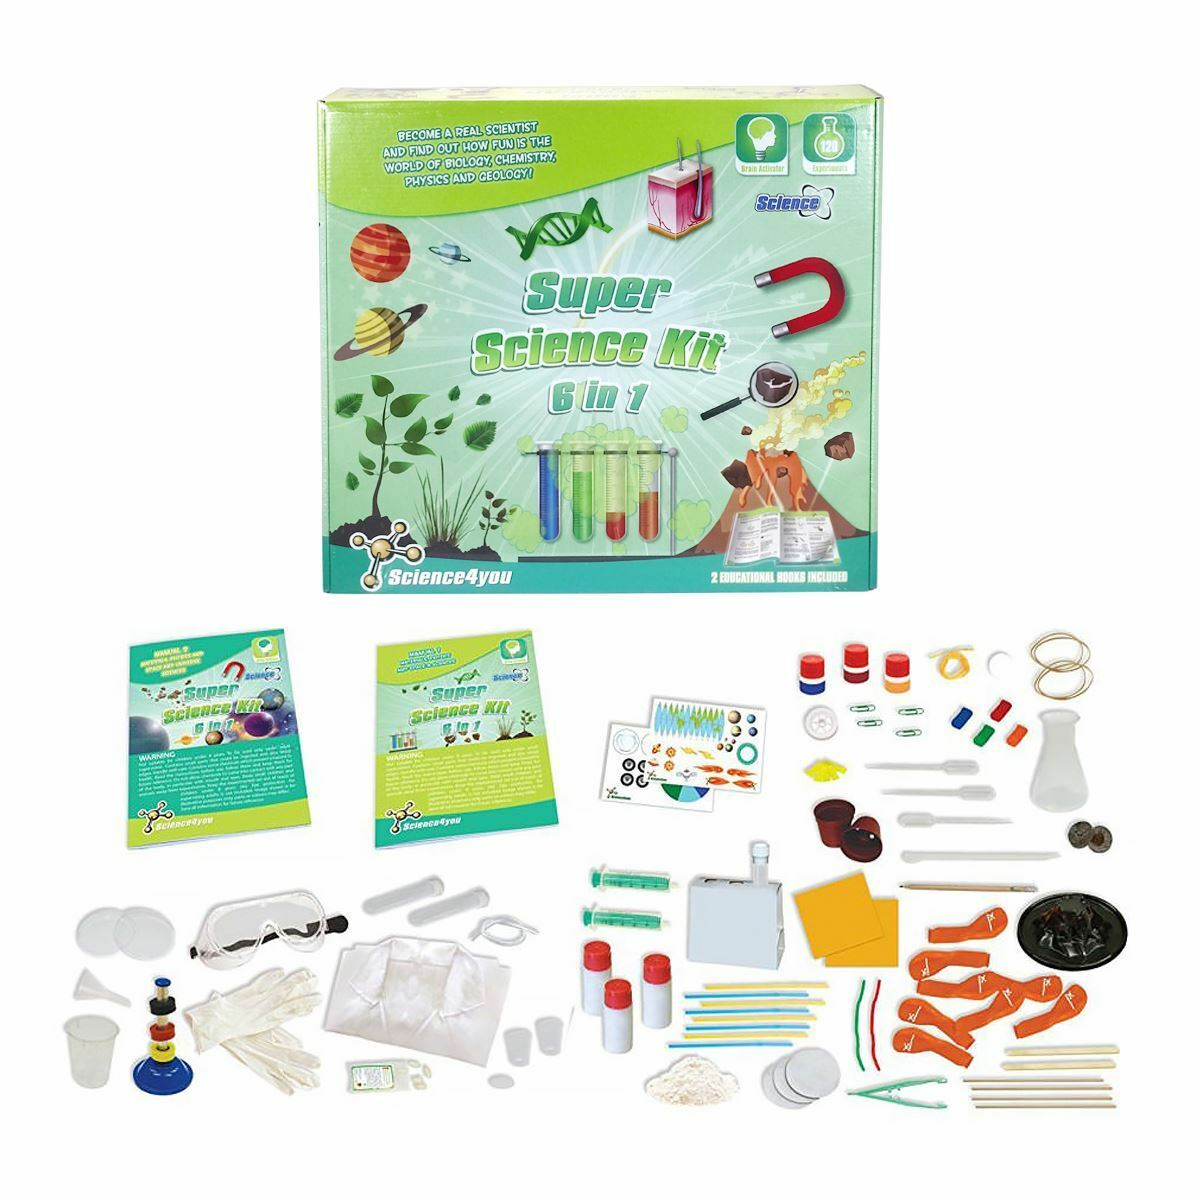 New Science4You Super Science Kit 6 In 1 Educational Experiments STEM Official